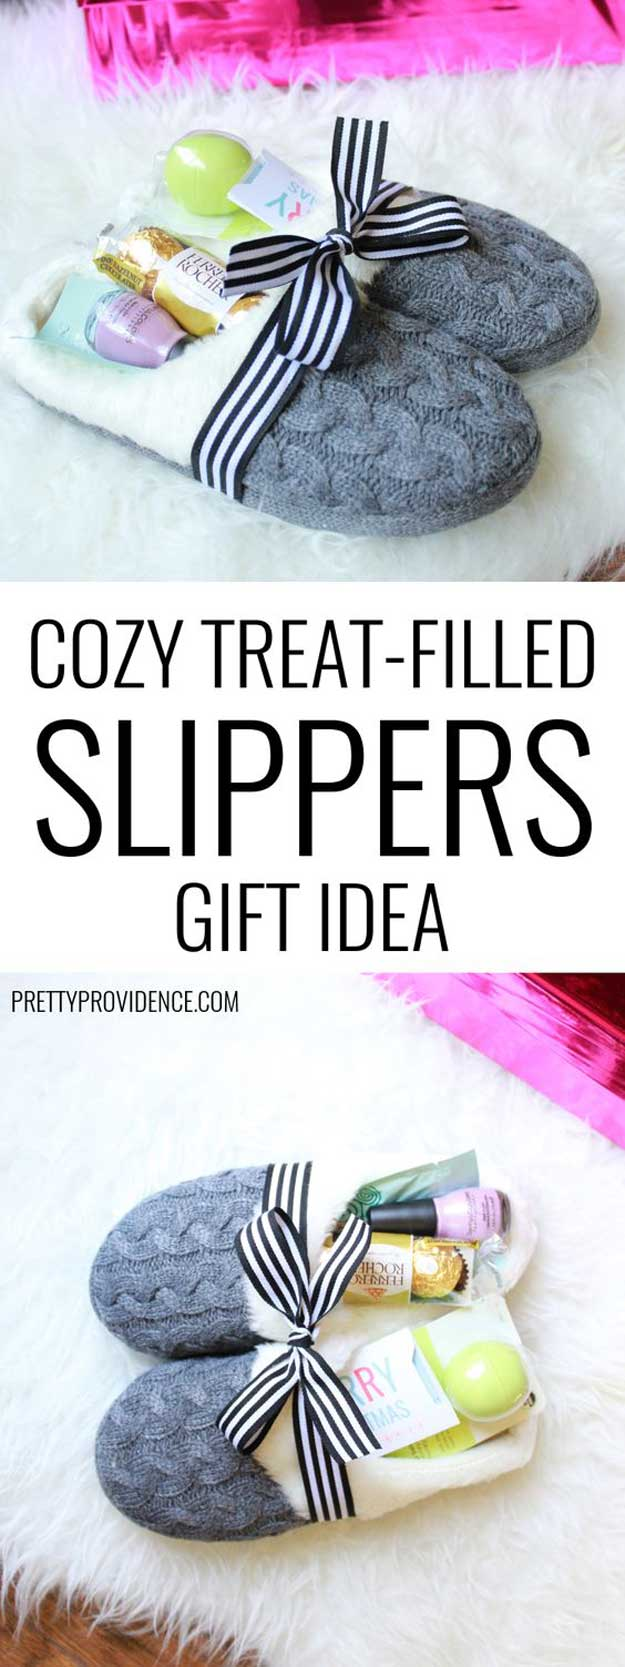 Cute-Gifts-to-Make-For-Her-Cozy-Slippers-Gift-Idea.jpg